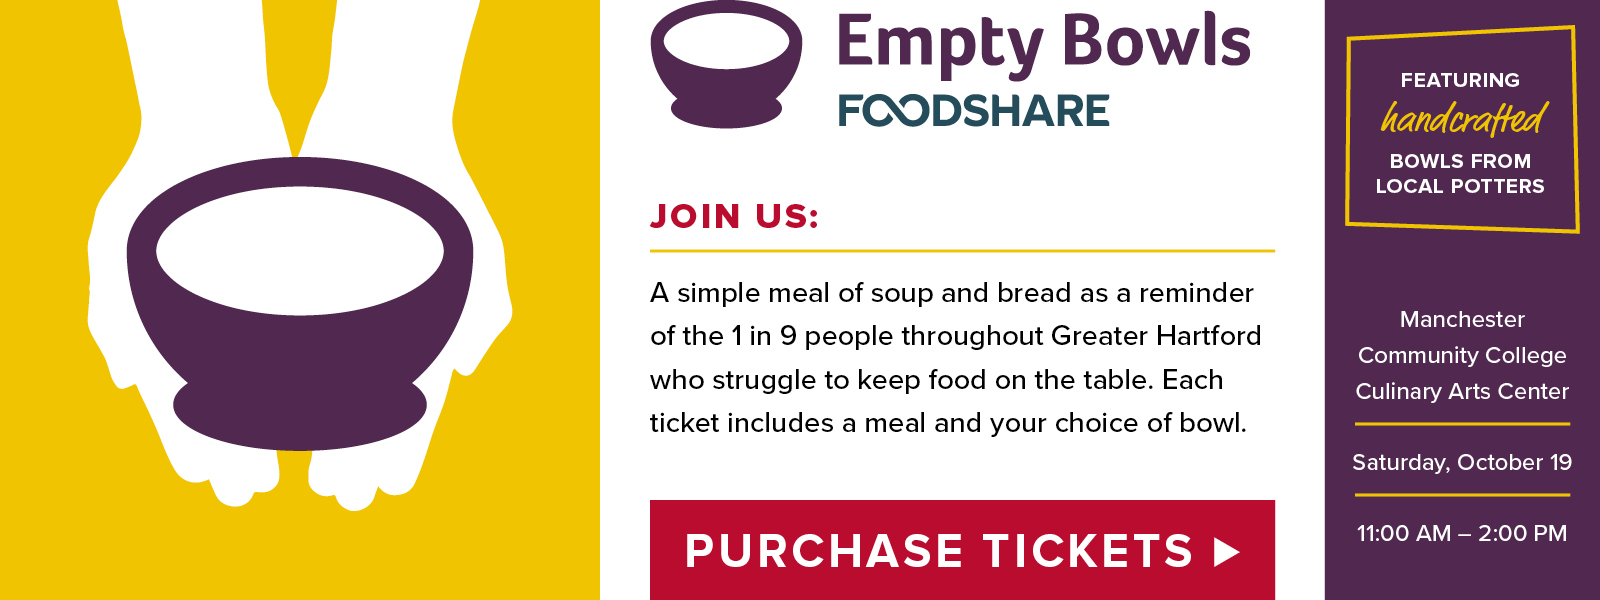 Foodshare Empty Bowls Event